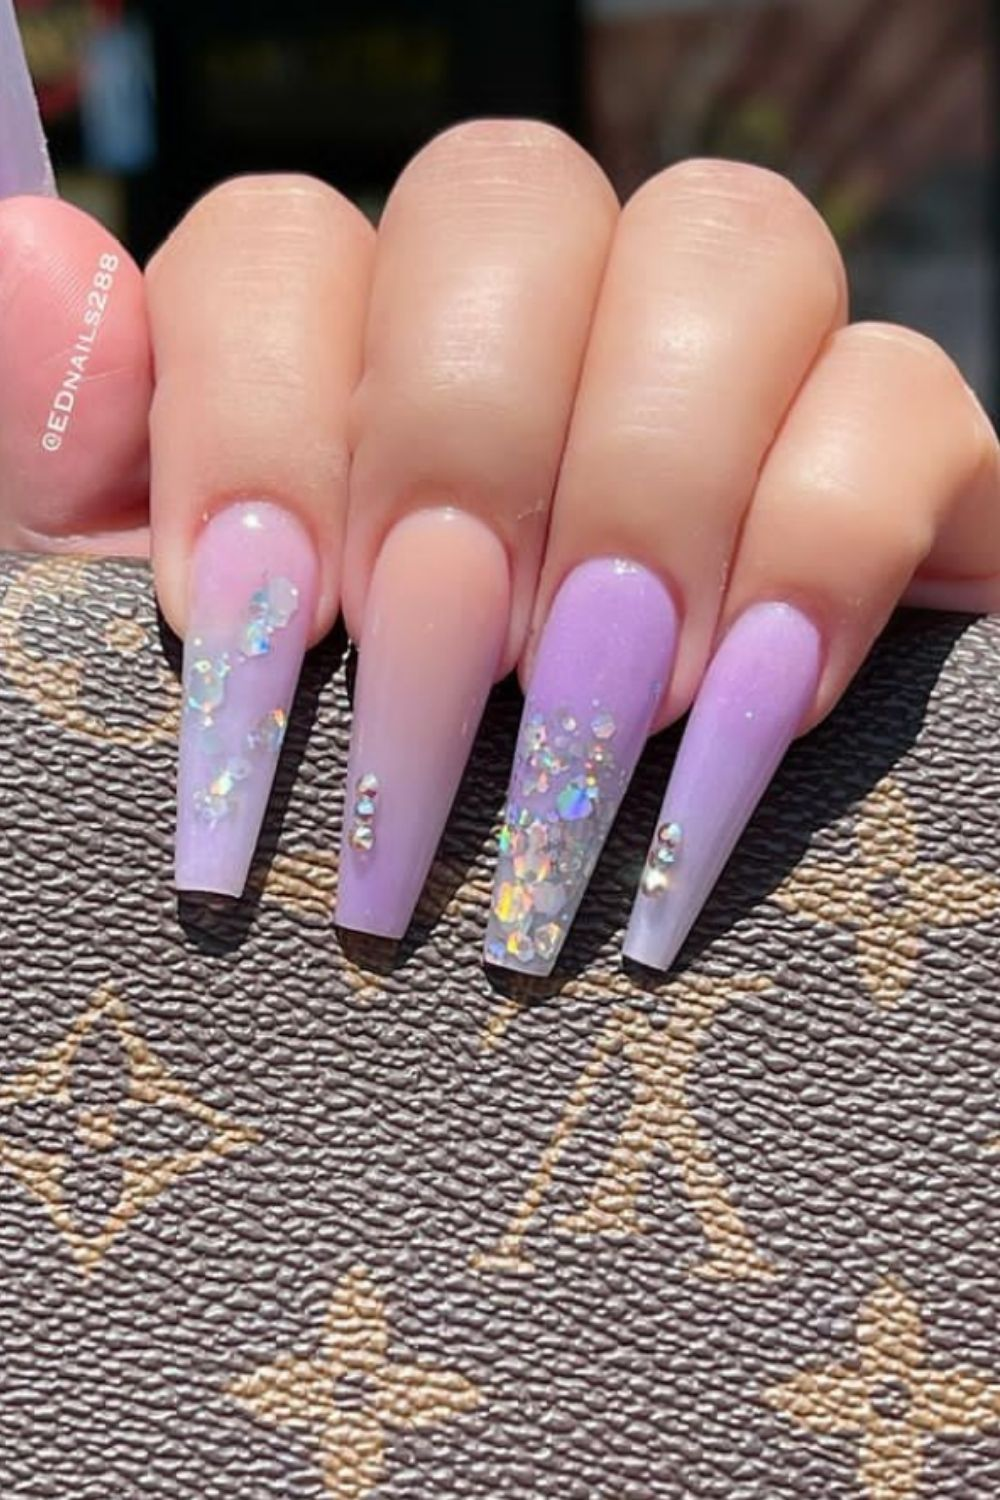 How To Shape Coffin Acrylic Nails For Summer 2021?